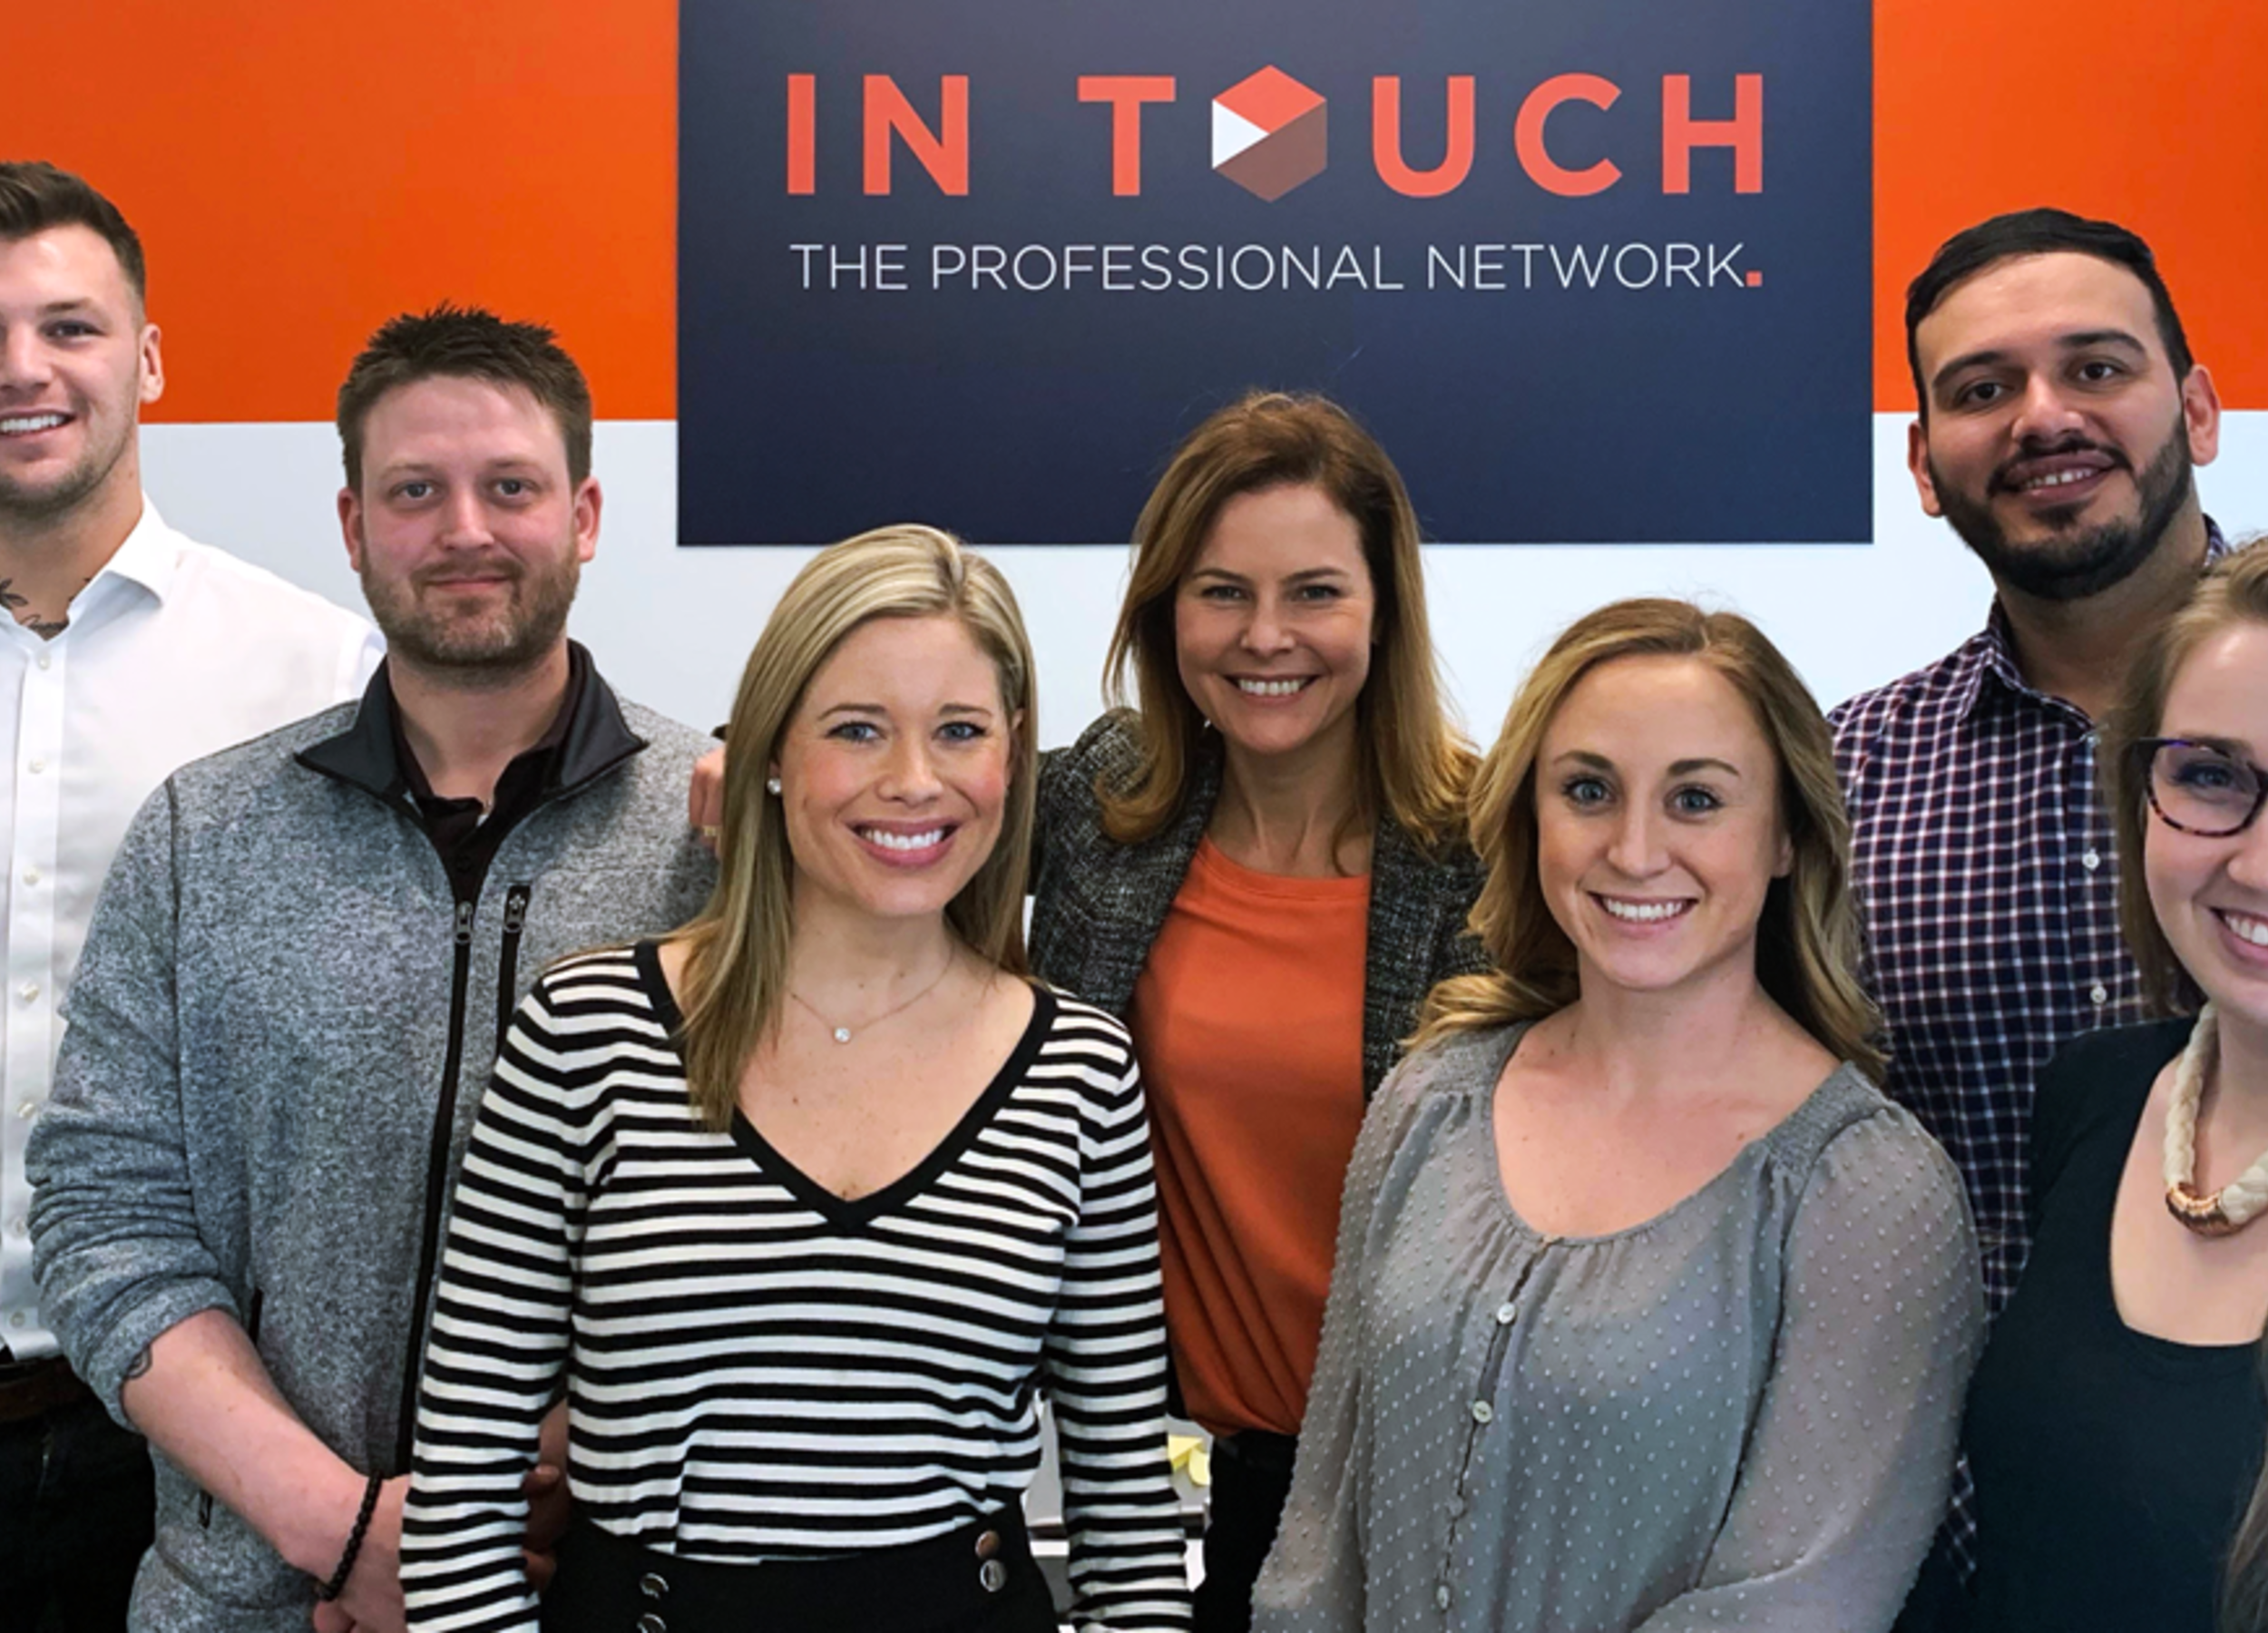 In Touch eyes global expansion with opening of first US office